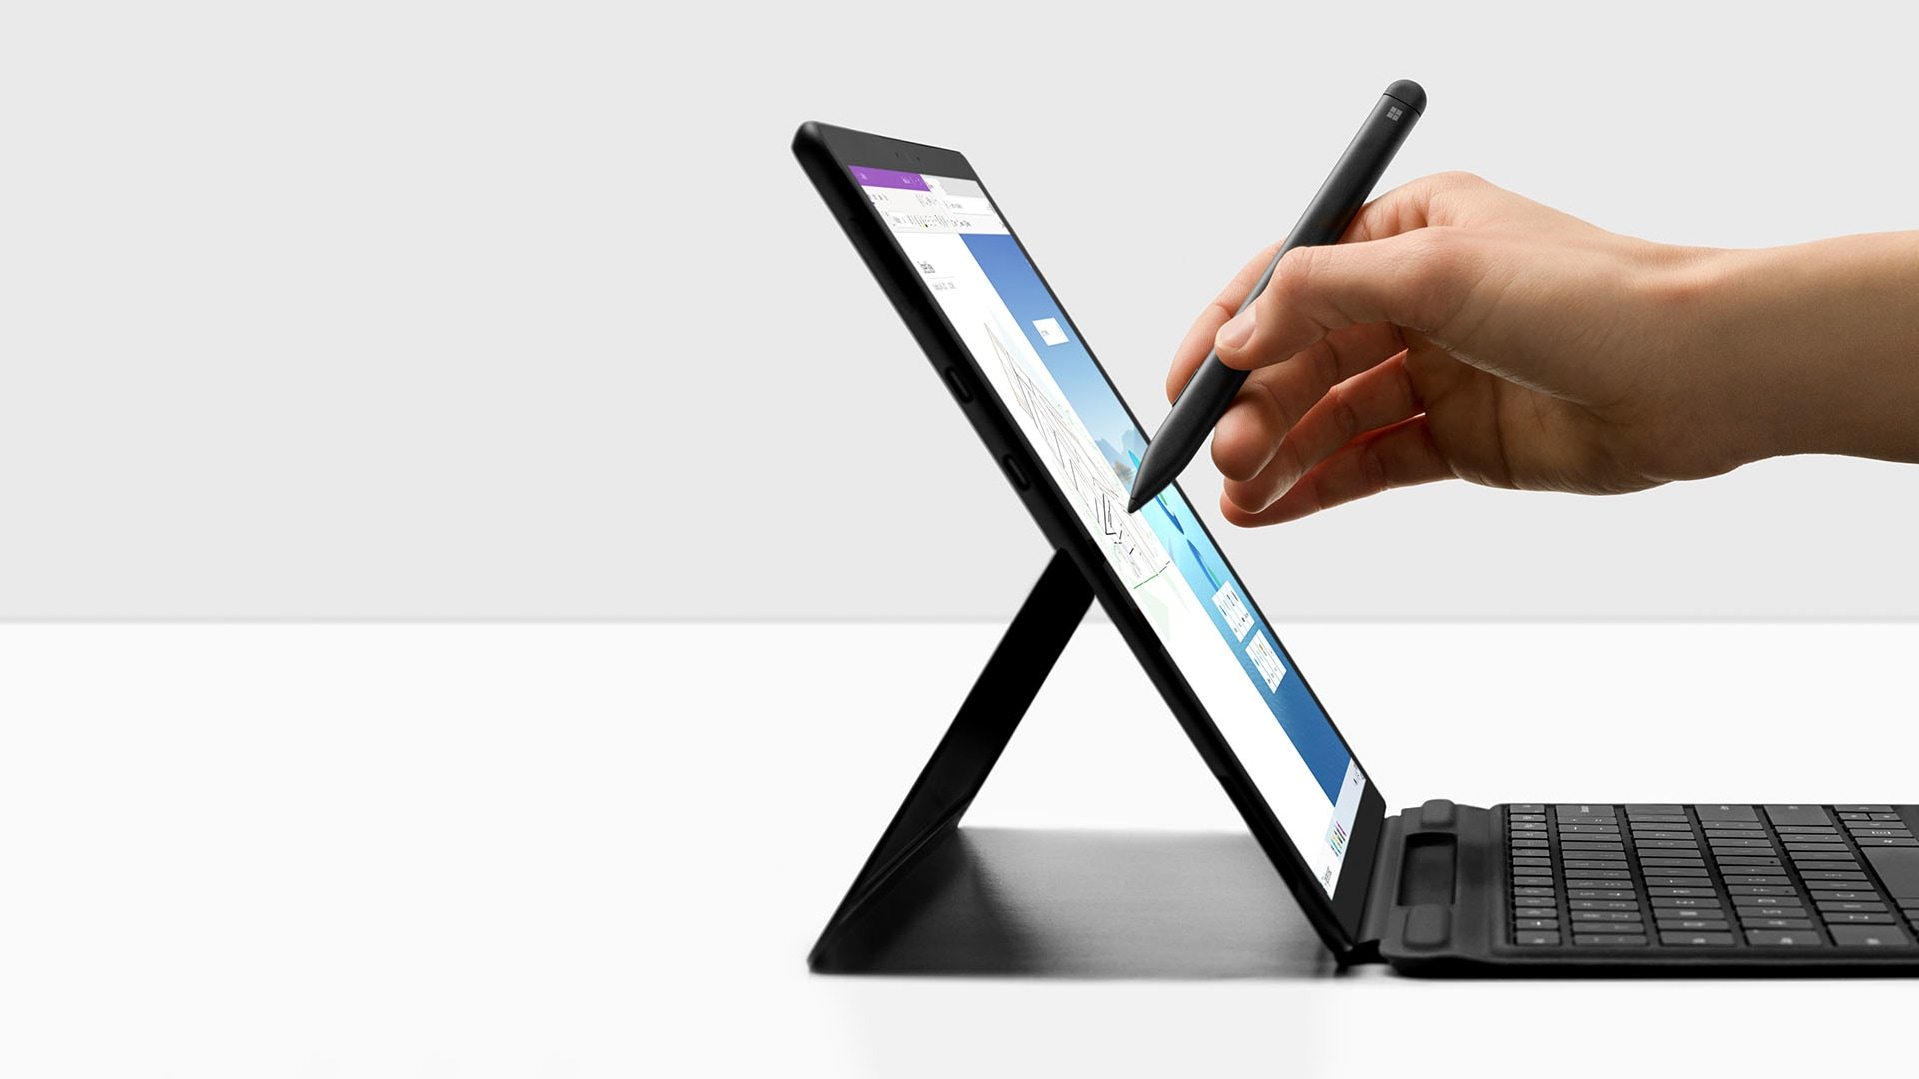 Surface Pro X with Surface Slim Pen being lifted off of Pro X Signature keyboard